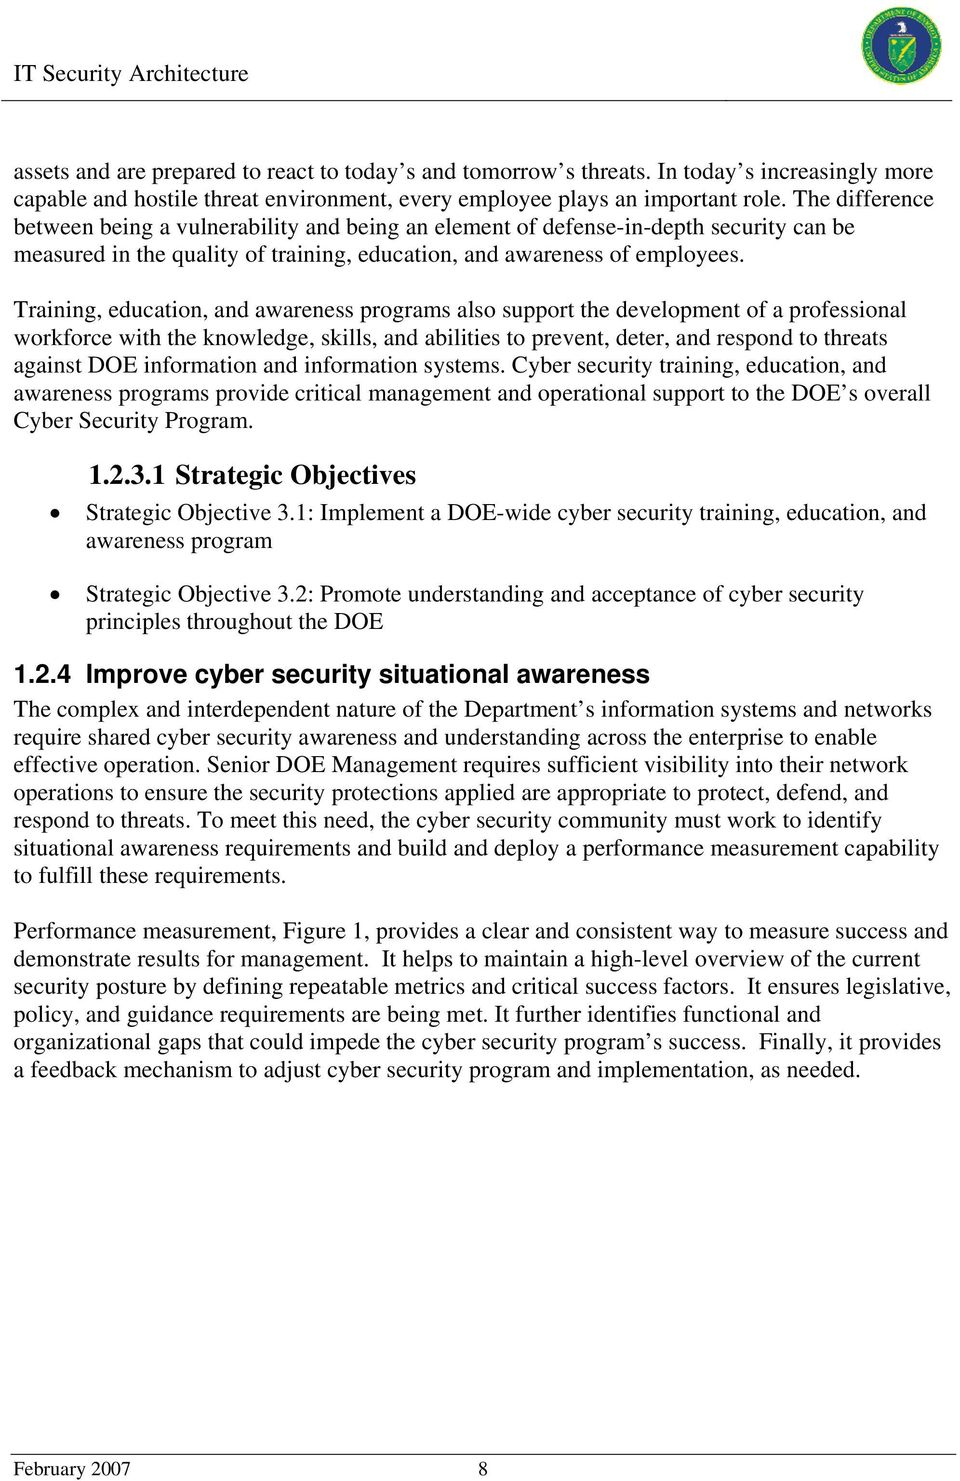 Training, education, and awareness programs also support the development of a professional workforce with the knowledge, skills, and abilities to prevent, deter, and respond to threats against DOE